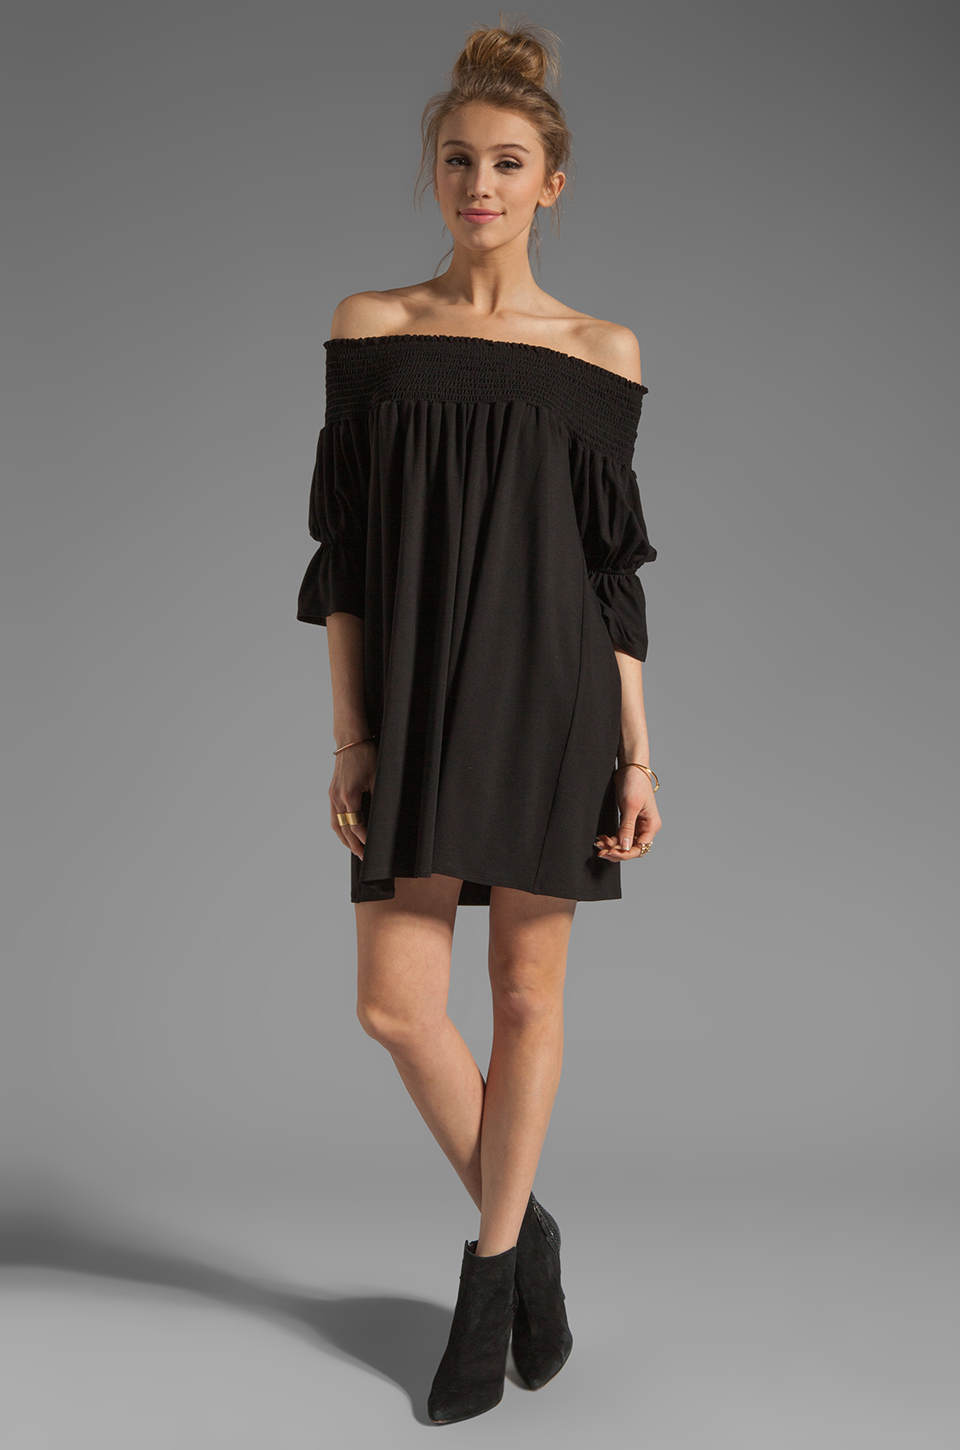 James & Joy Audrey Off the Shoulder Dress in Black | REVOLVE